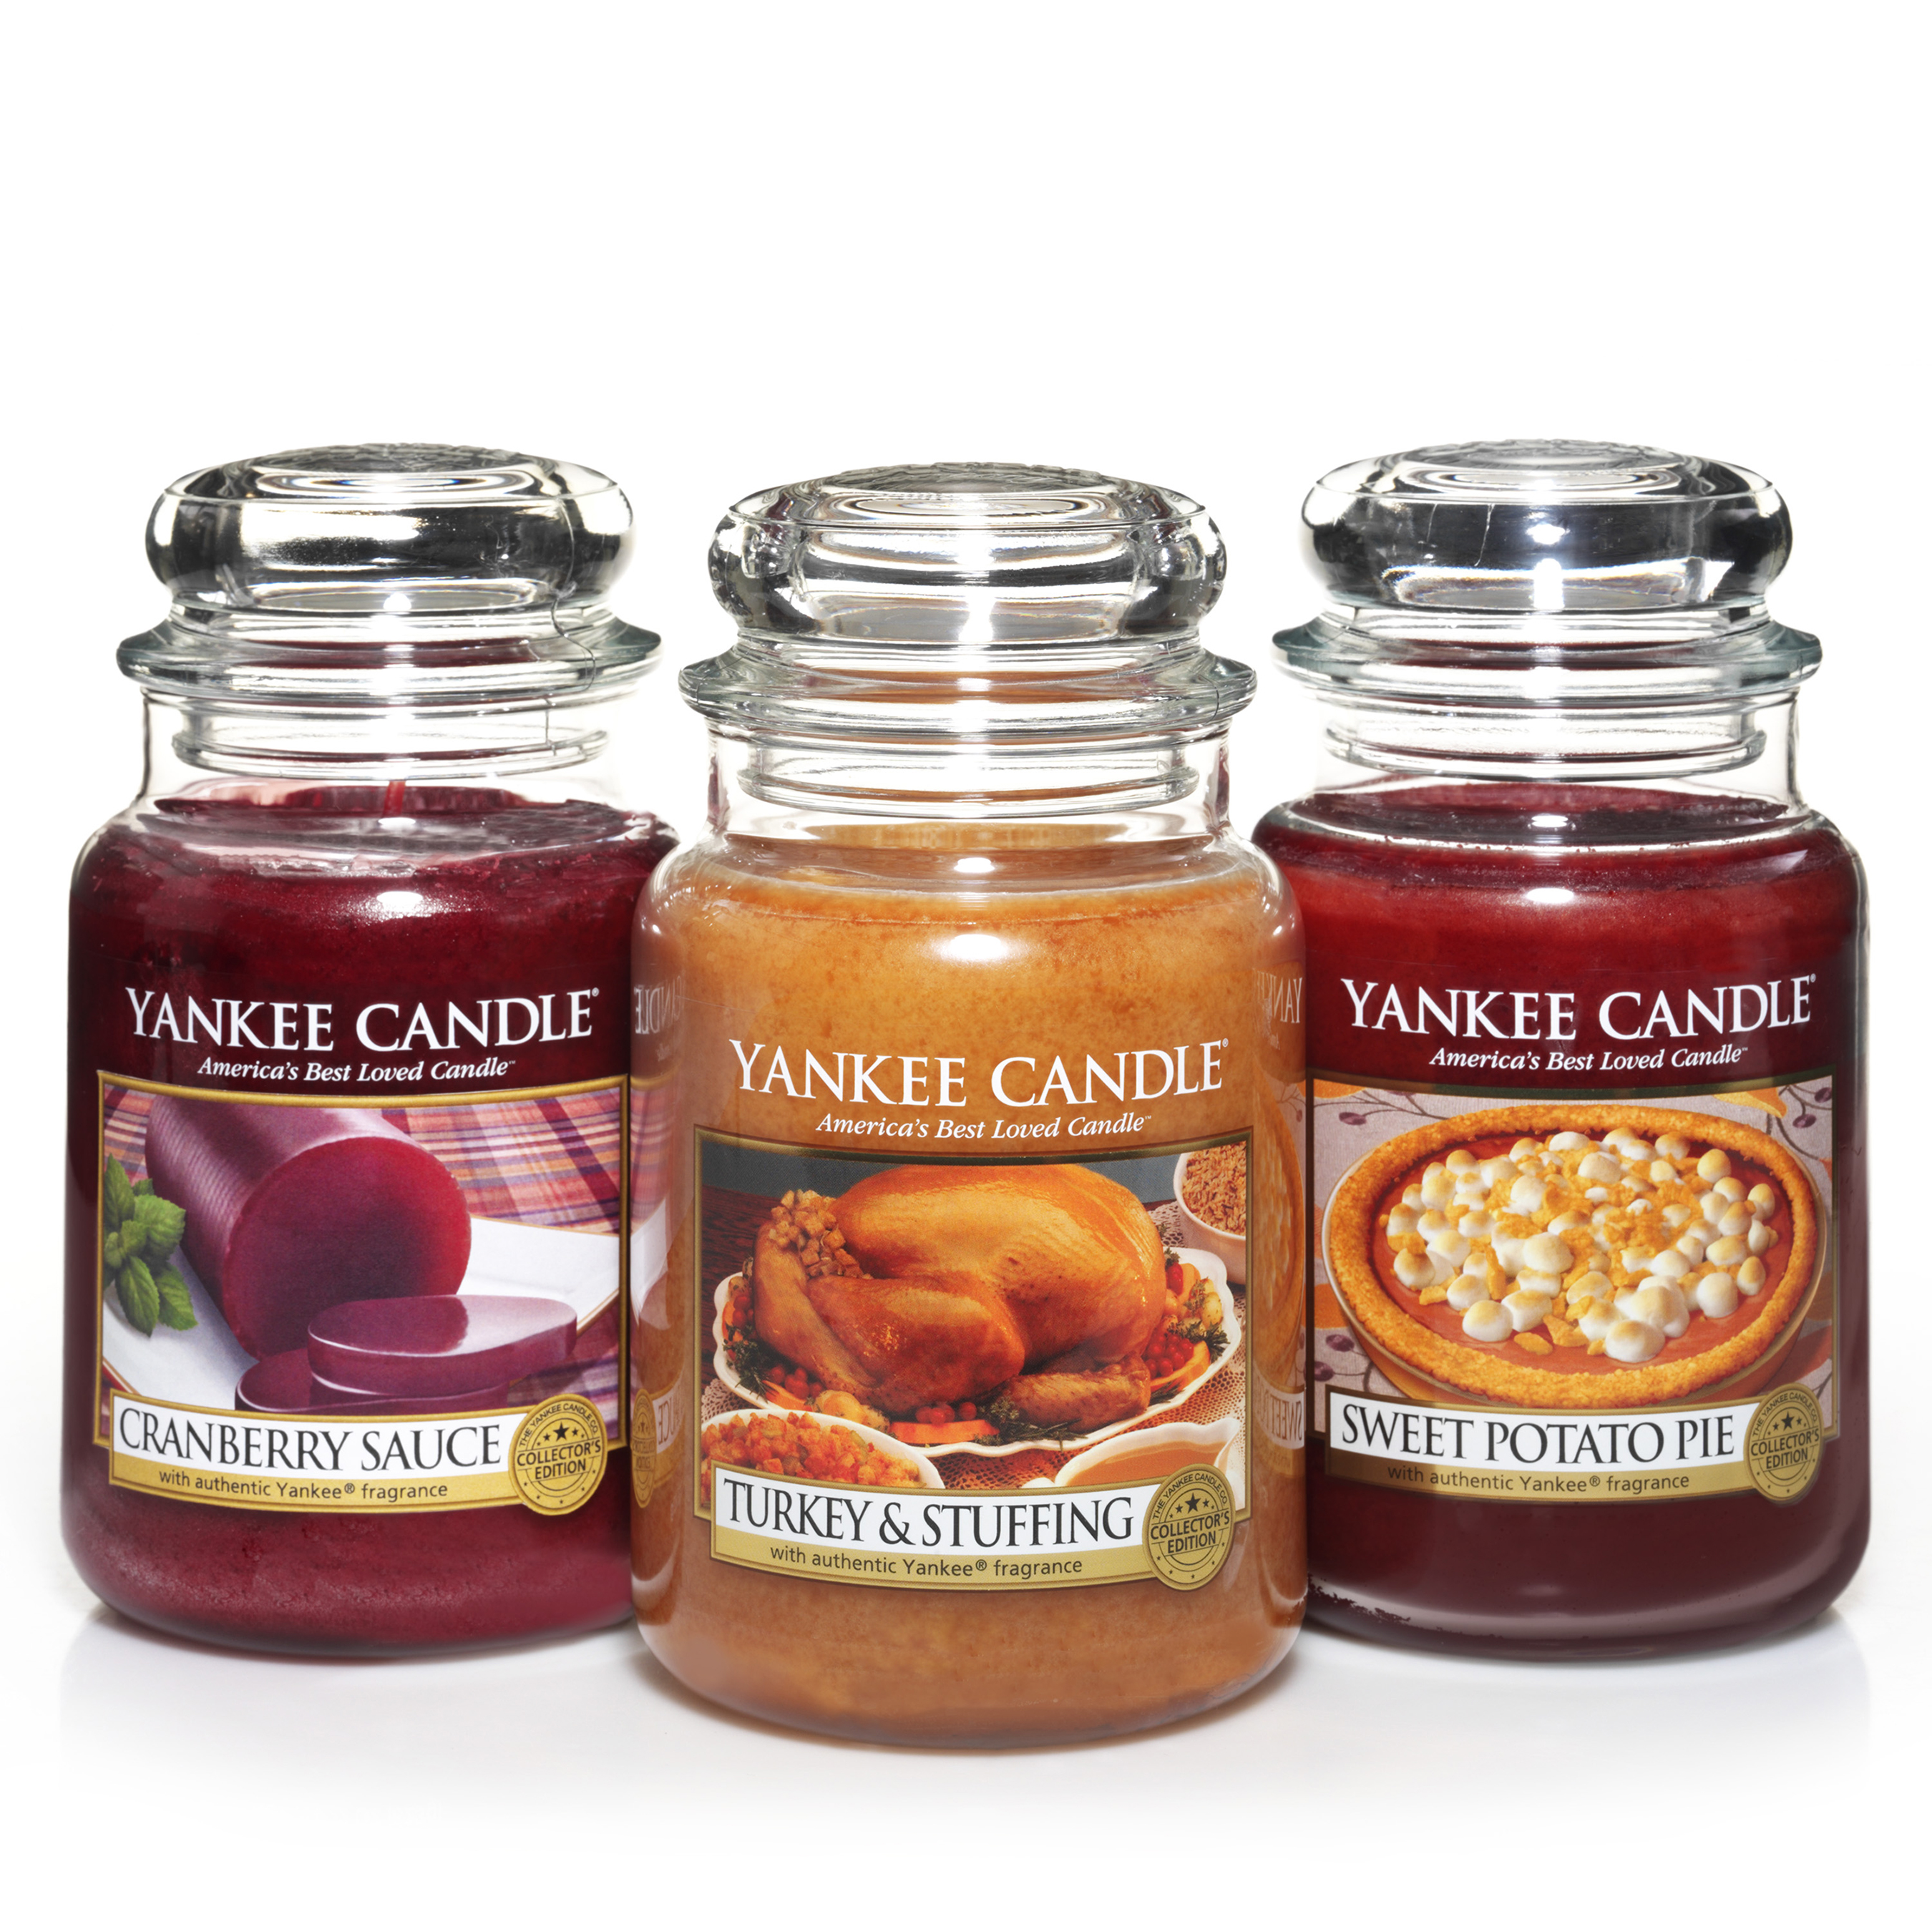 Yankee Candle Launches Thanksgiving Dinner Collection To ...